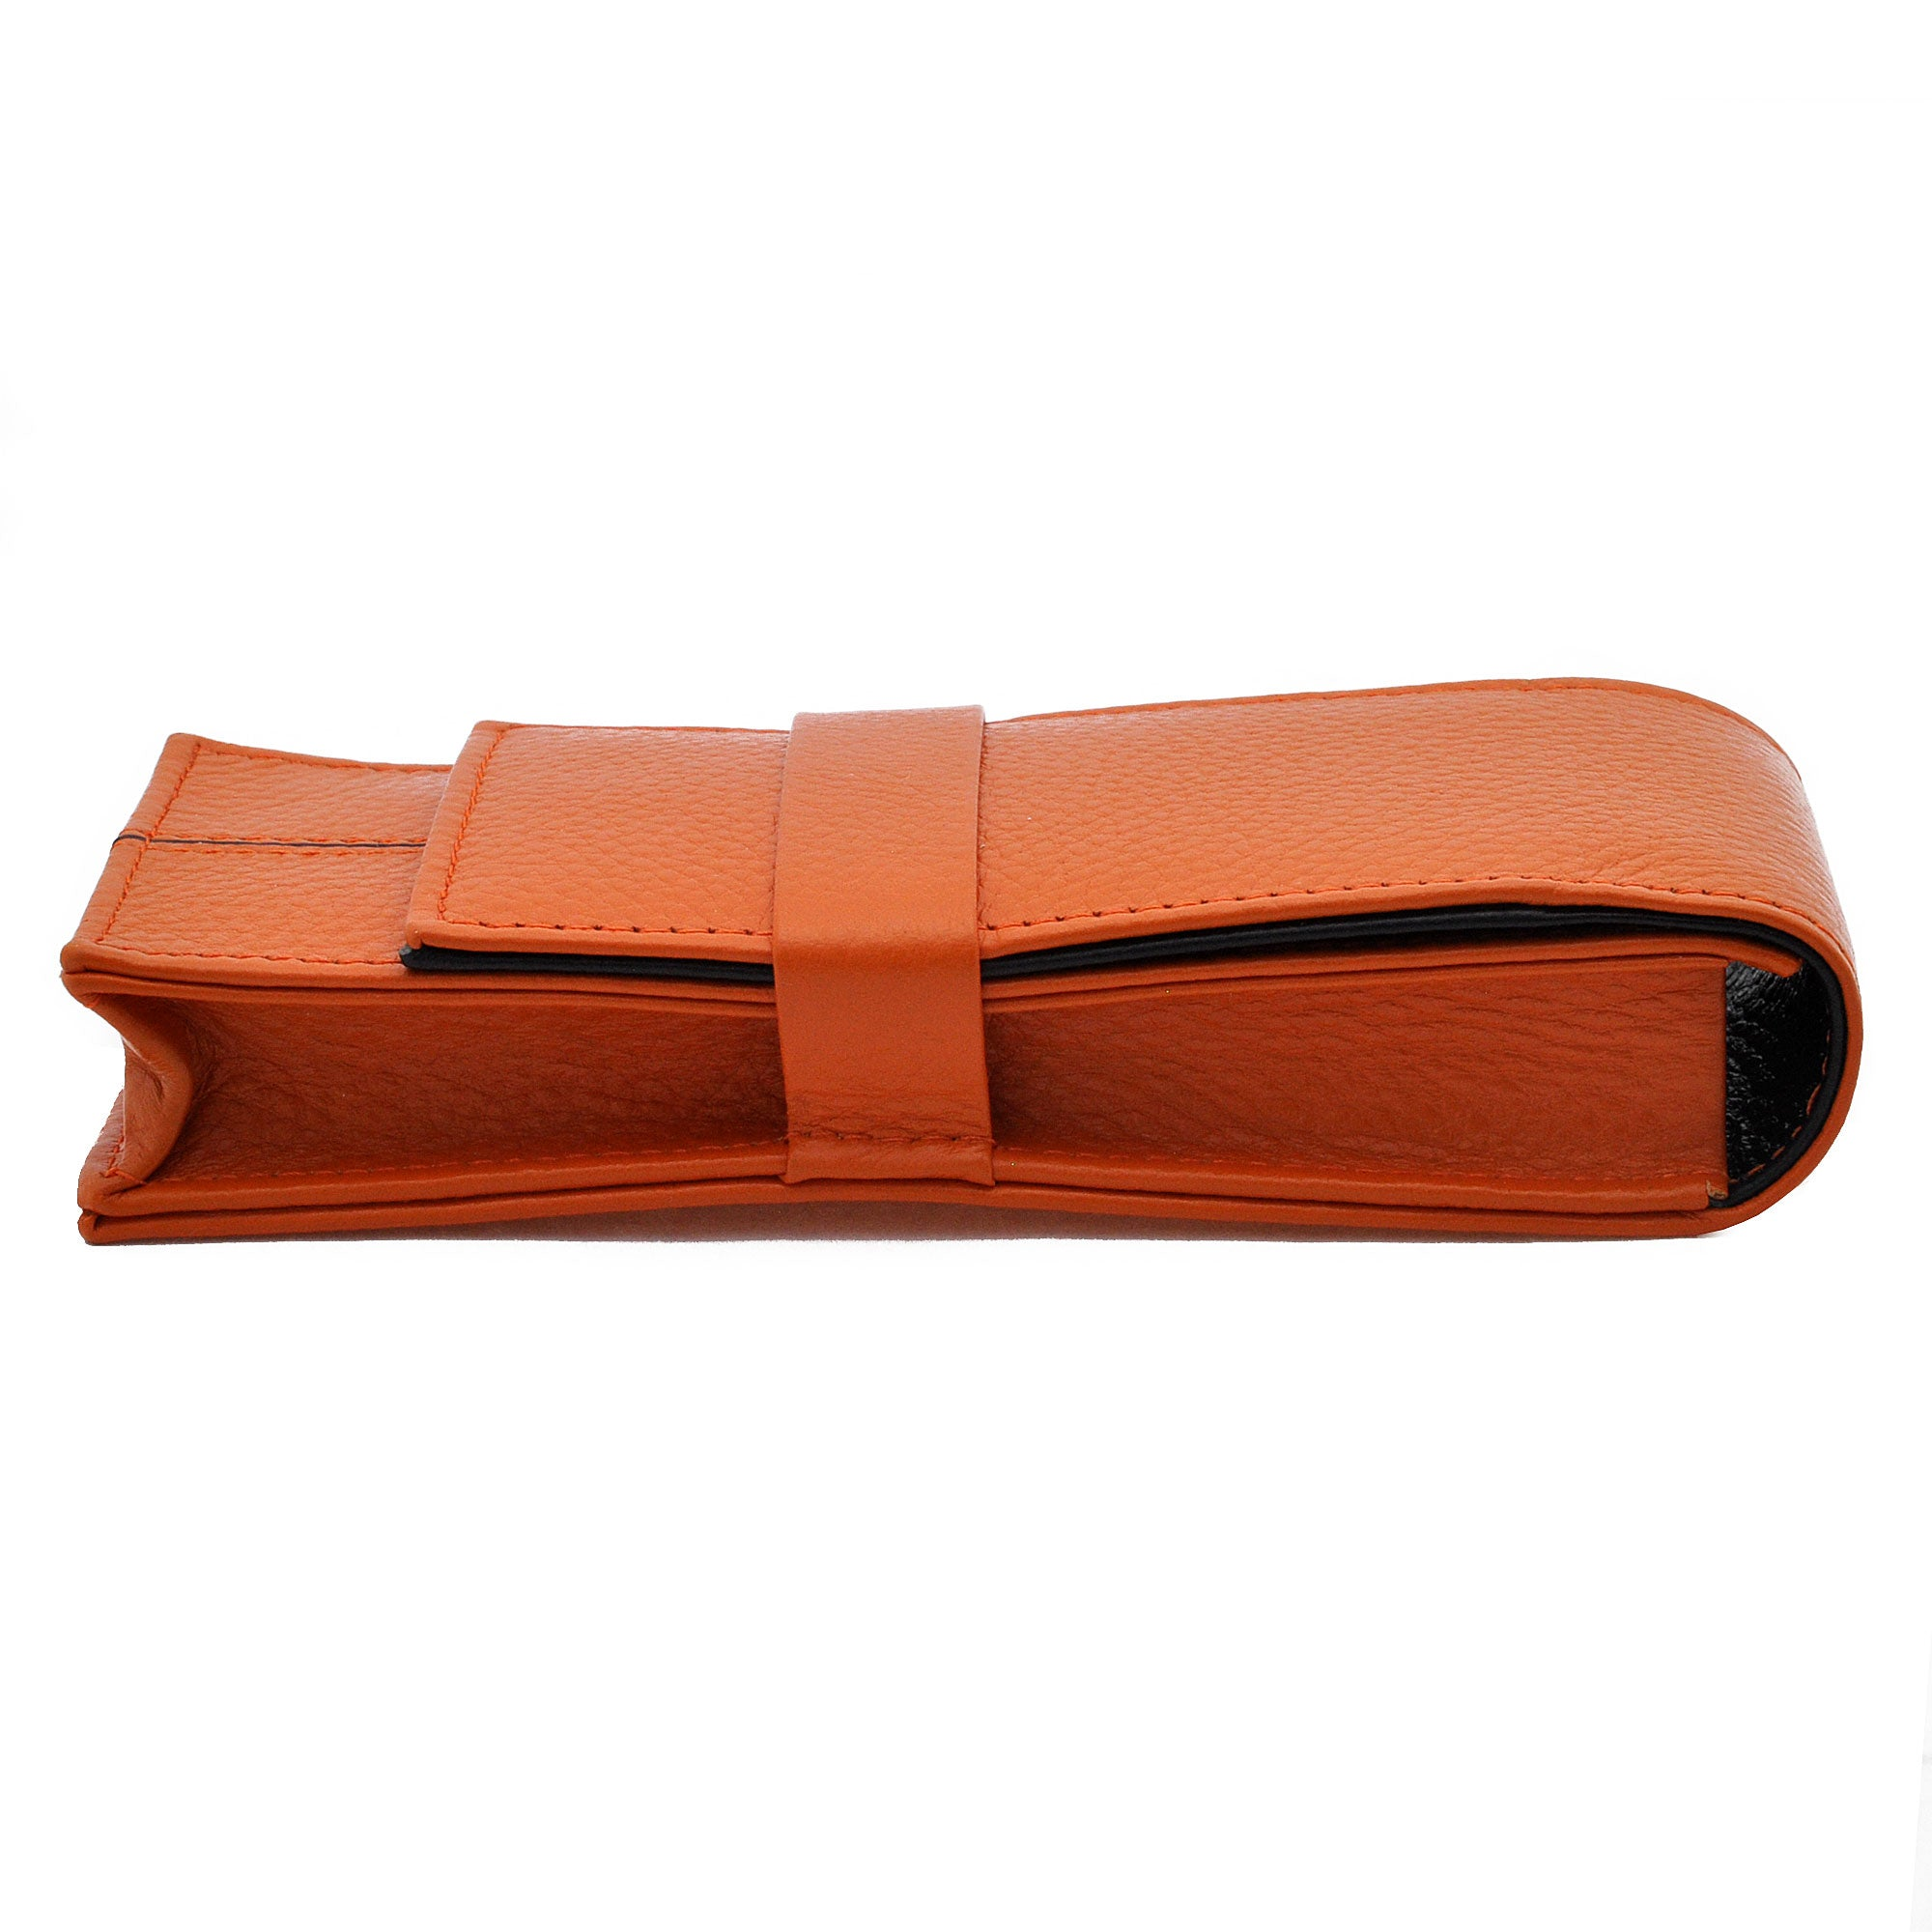 Penbrace 3 Pen Pouch - Orange-Black Pen Case - Wancher Pen